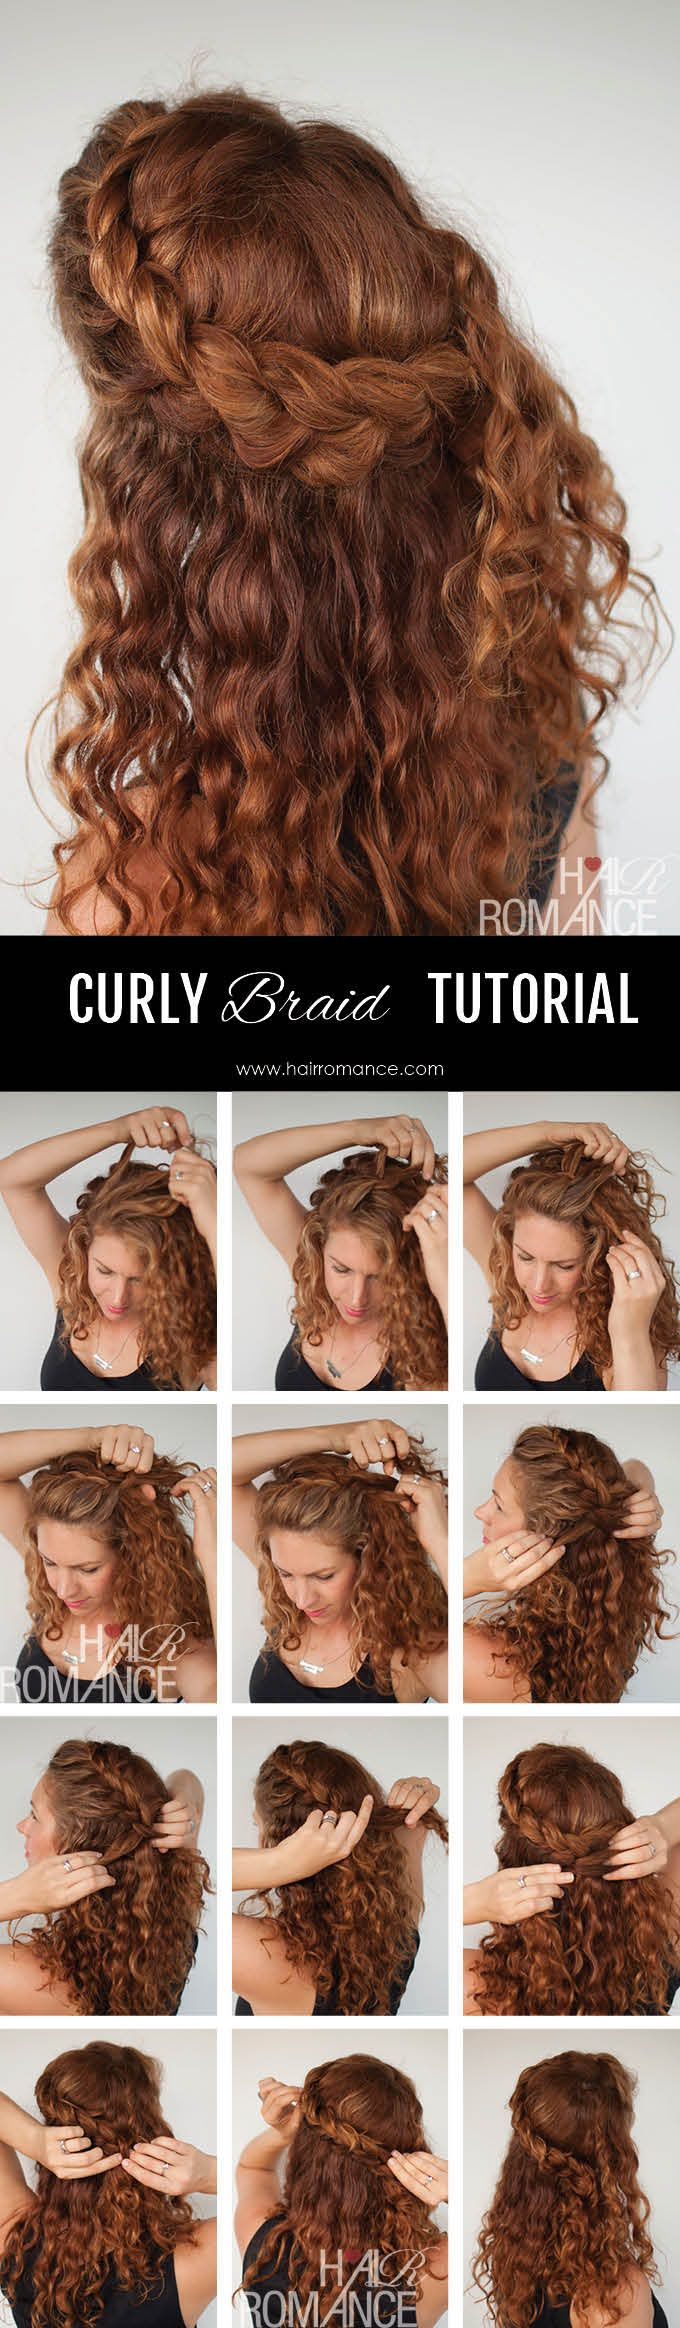 Easy Hairstyles For Curly Hair Best 65 Best Naturally Curly Hairstyles Images On Pinterest  Hairstyle